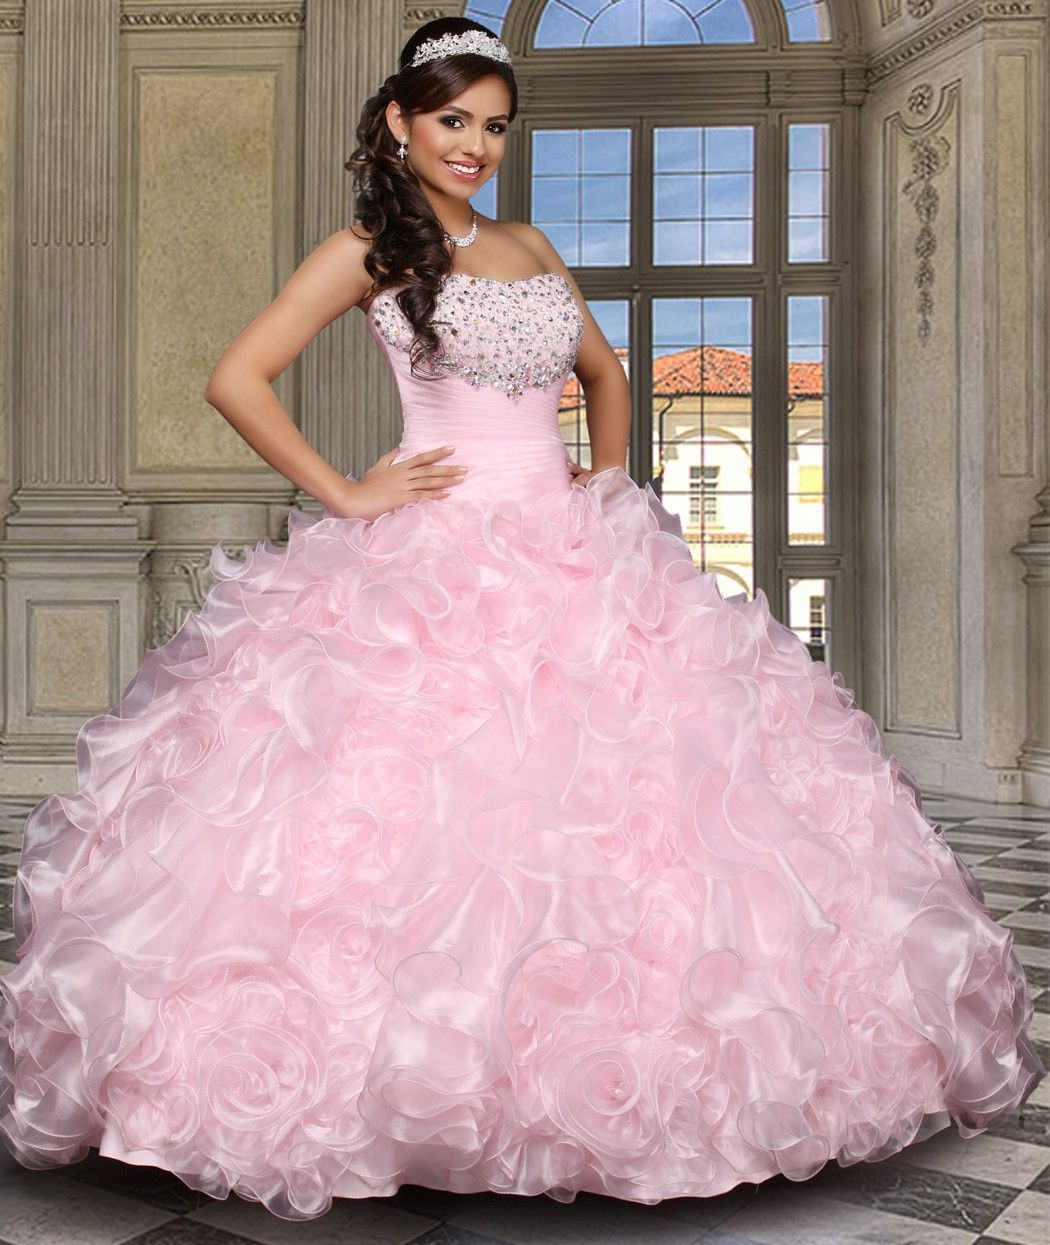 Q by DaVinci Quinceanera Dress Style 80233 | Vestiditos, 15 años y ...